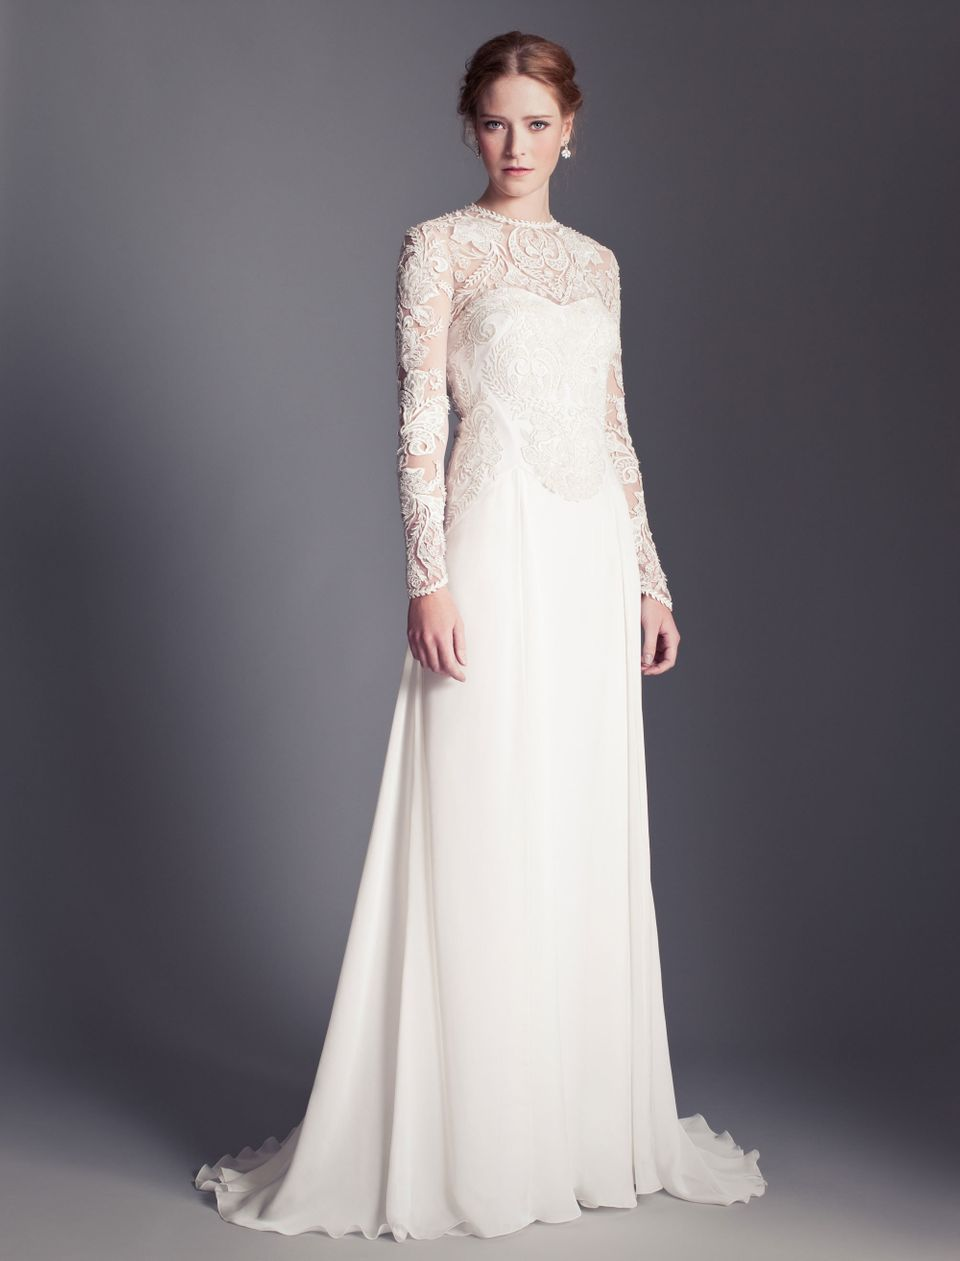 Flora by Temperley London is a tulle and chiffon sheath that features engineered floral stitch work embroidery with hand-cut